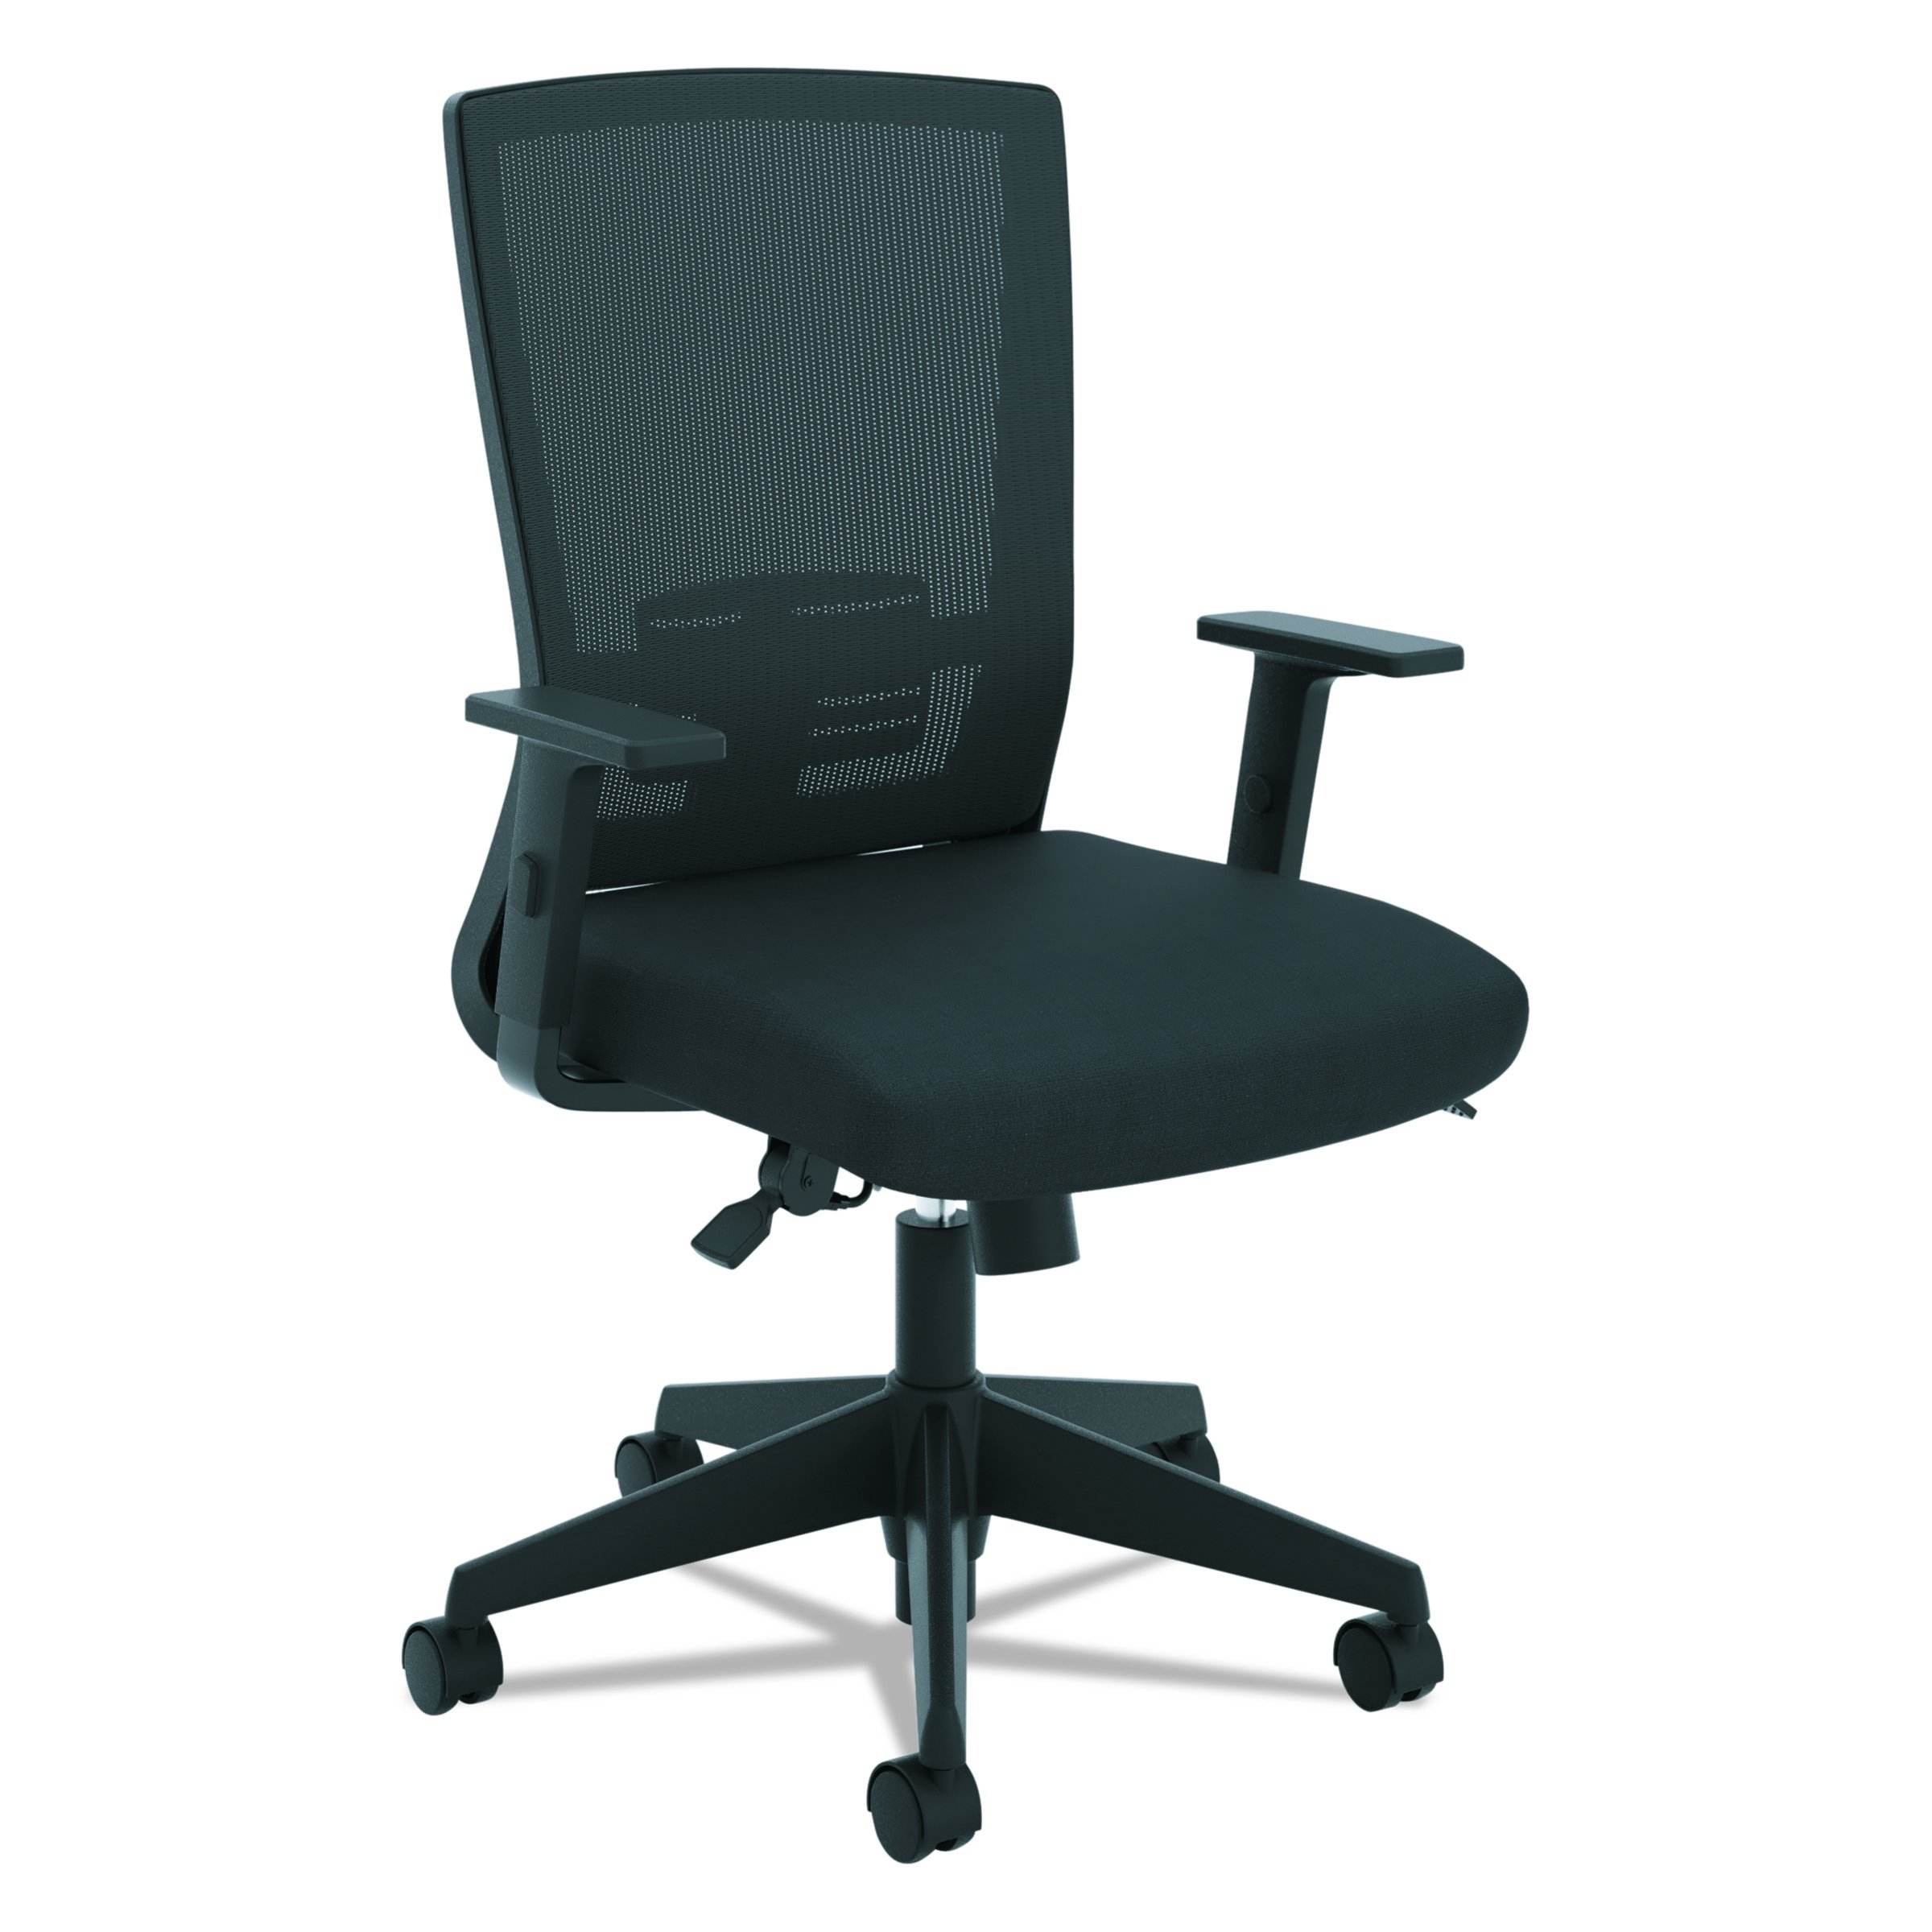 basyx by HON Mesh Task Chair - High Back Work Chair with Adjustable Arms, Black (HVL541)